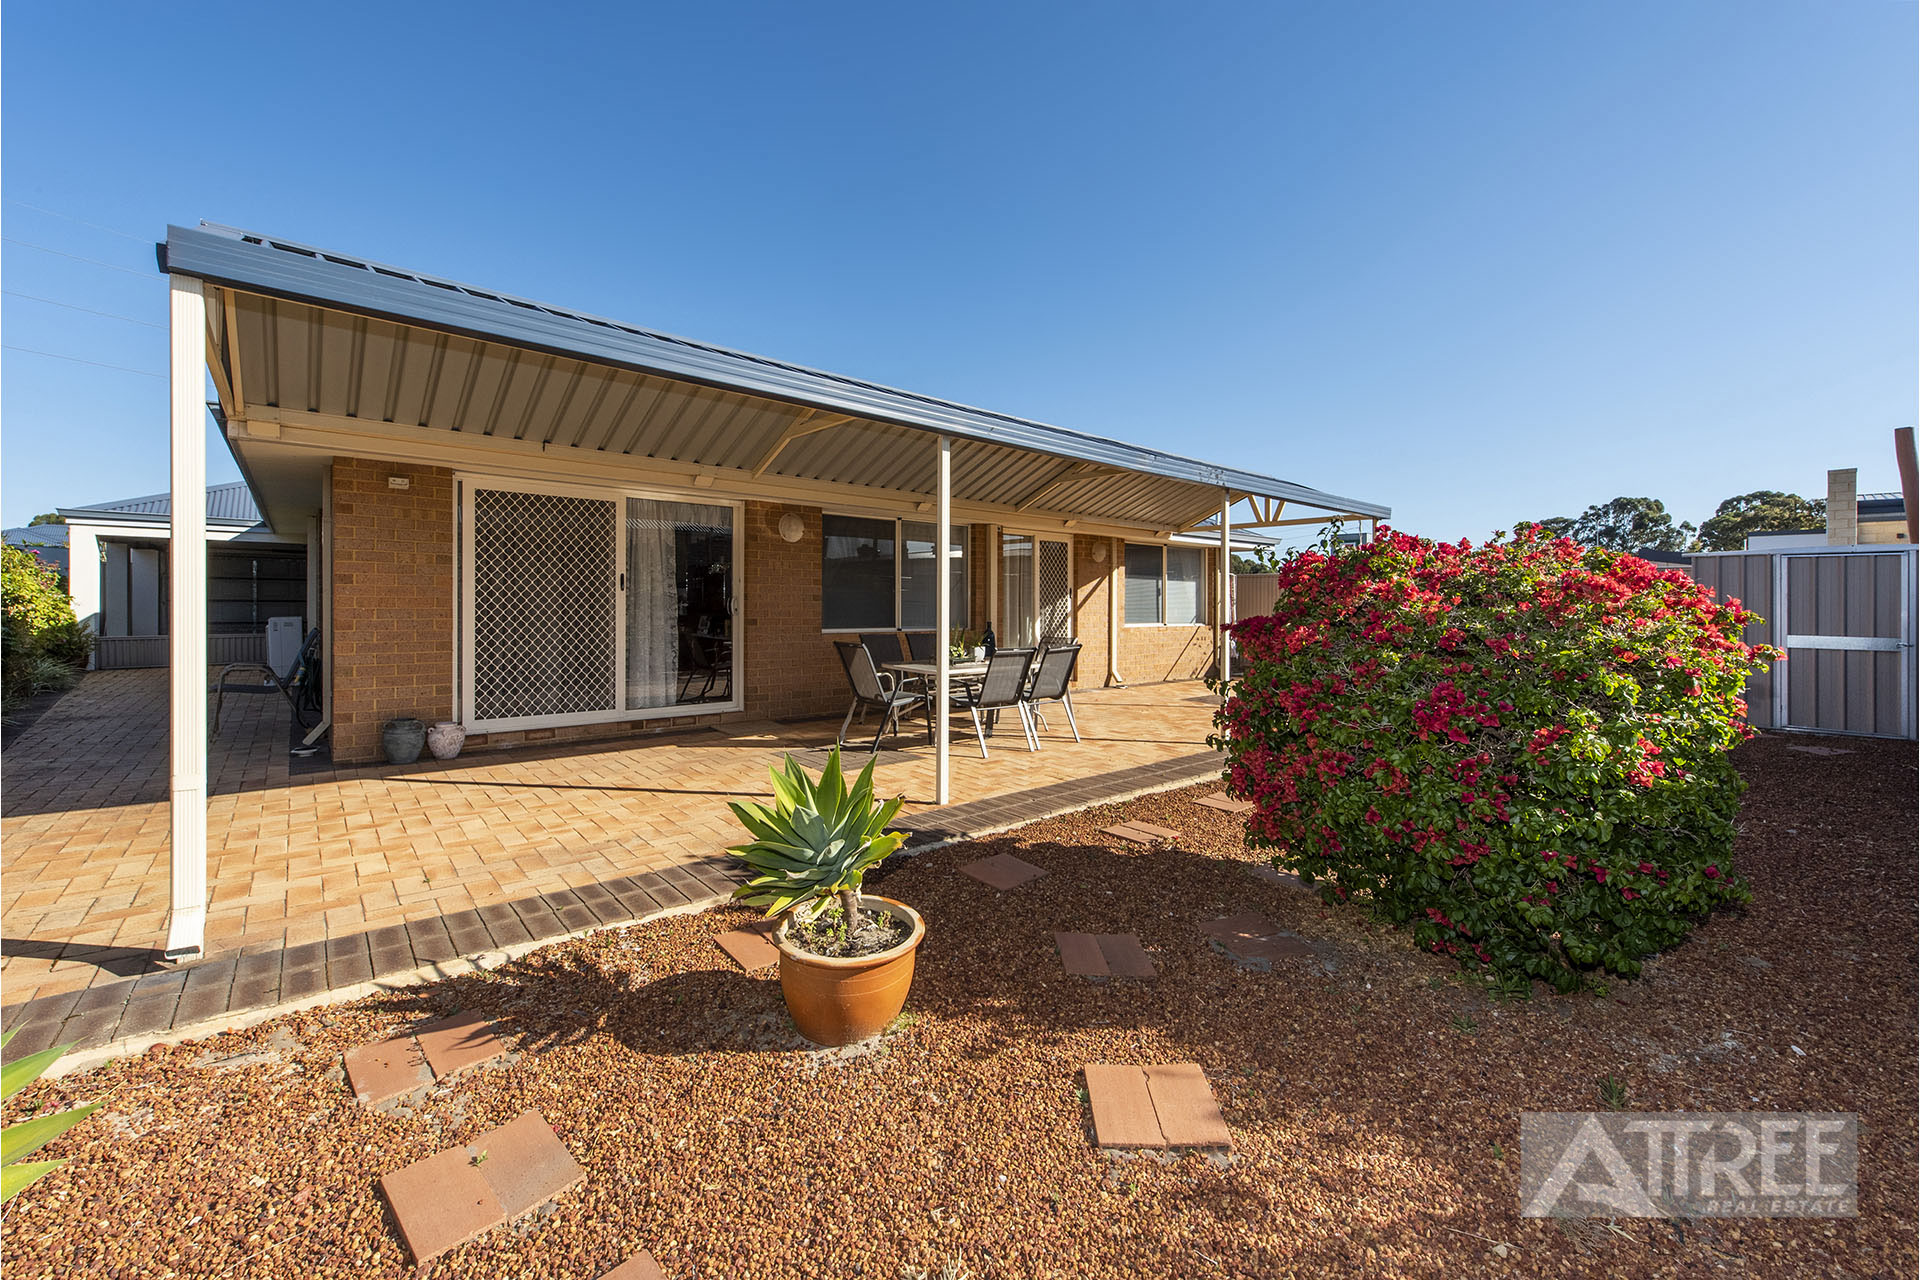 Property for sale in SOUTHERN RIVER, 479 Balfour Street : Attree Real Estate